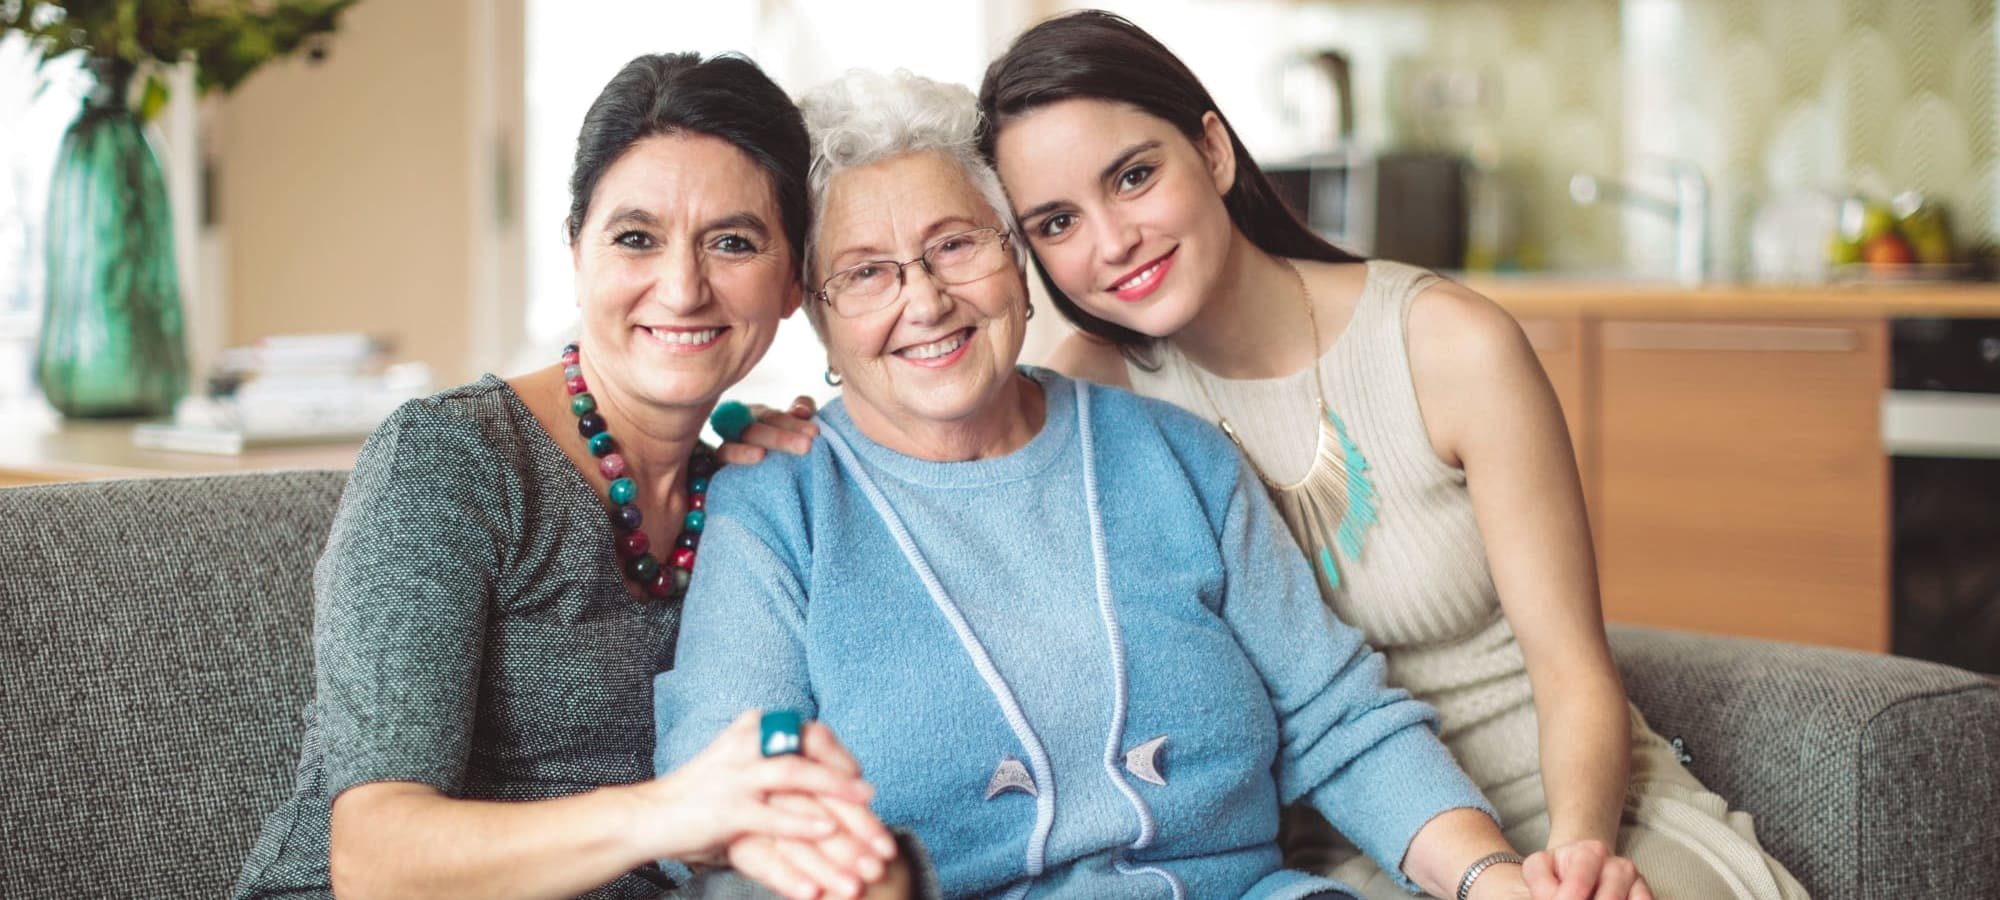 Three generations of women on a couch